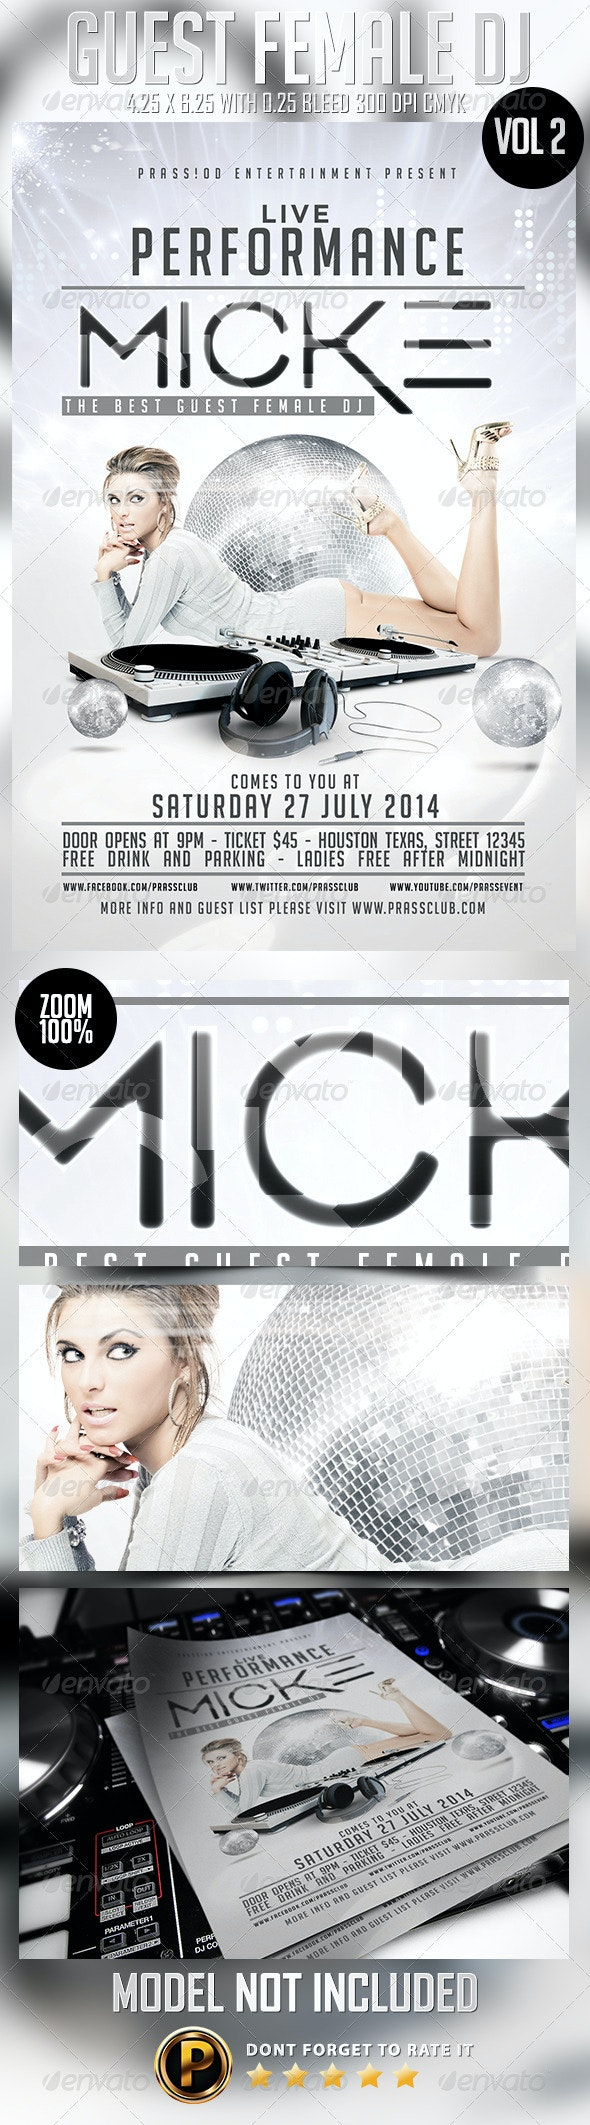 Guest Female DJ Flyer Template Vol 2 - Clubs & Parties Events